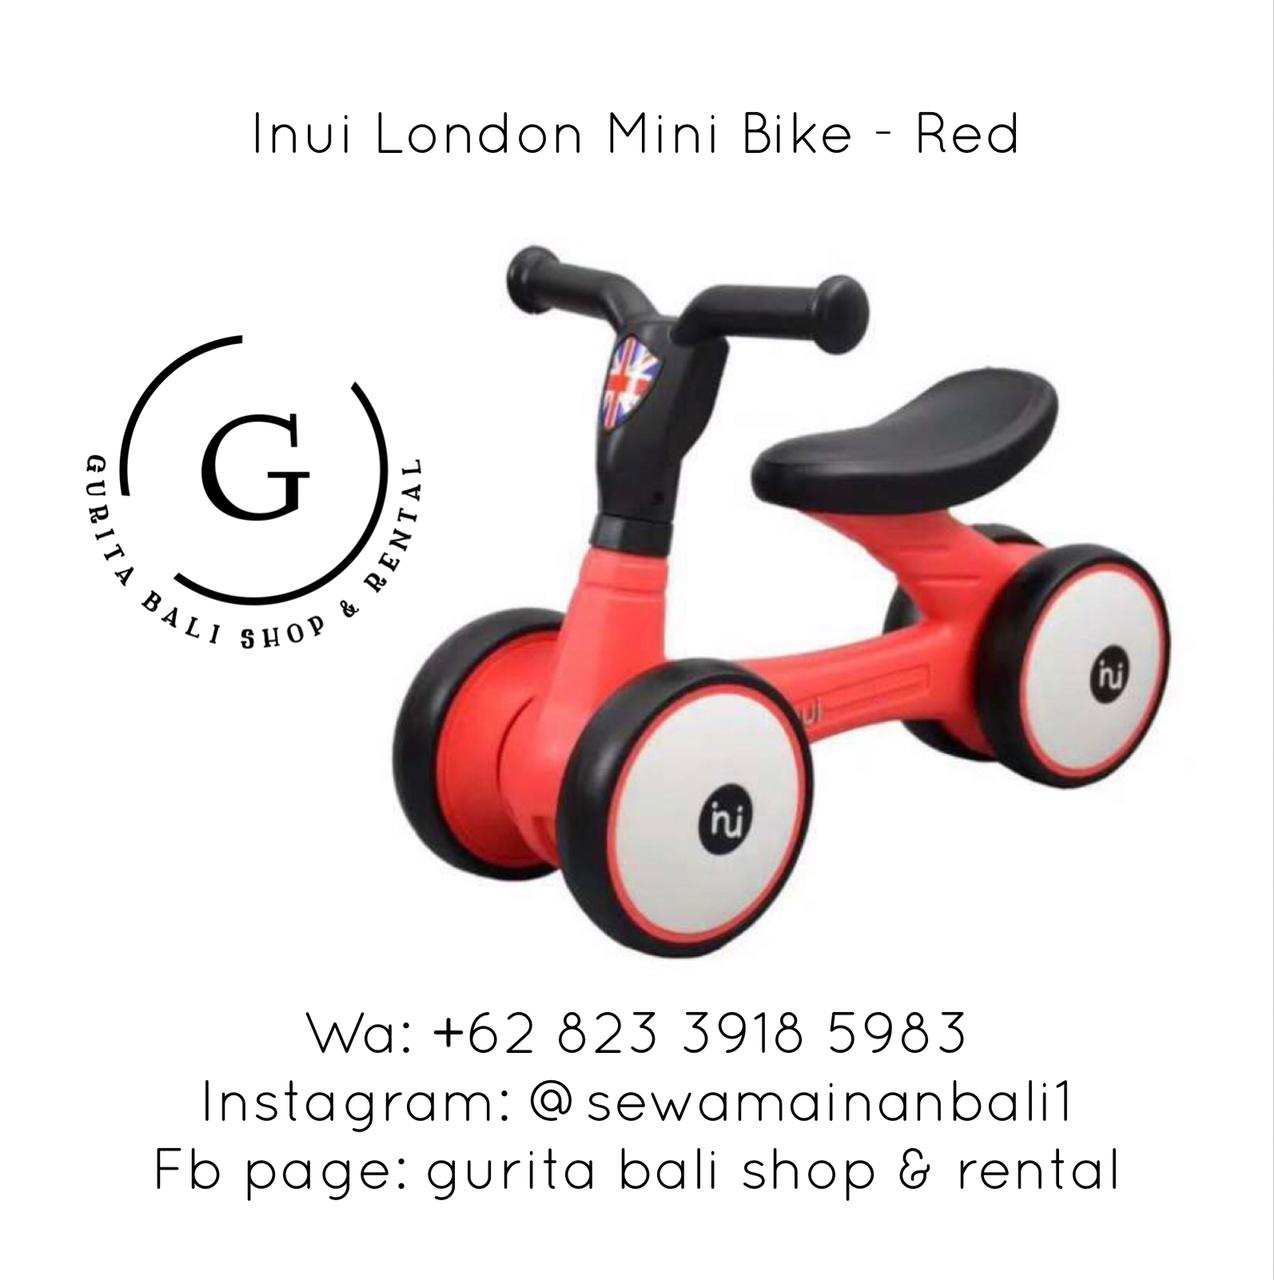 INUI LONDON MINI BIKE - RED